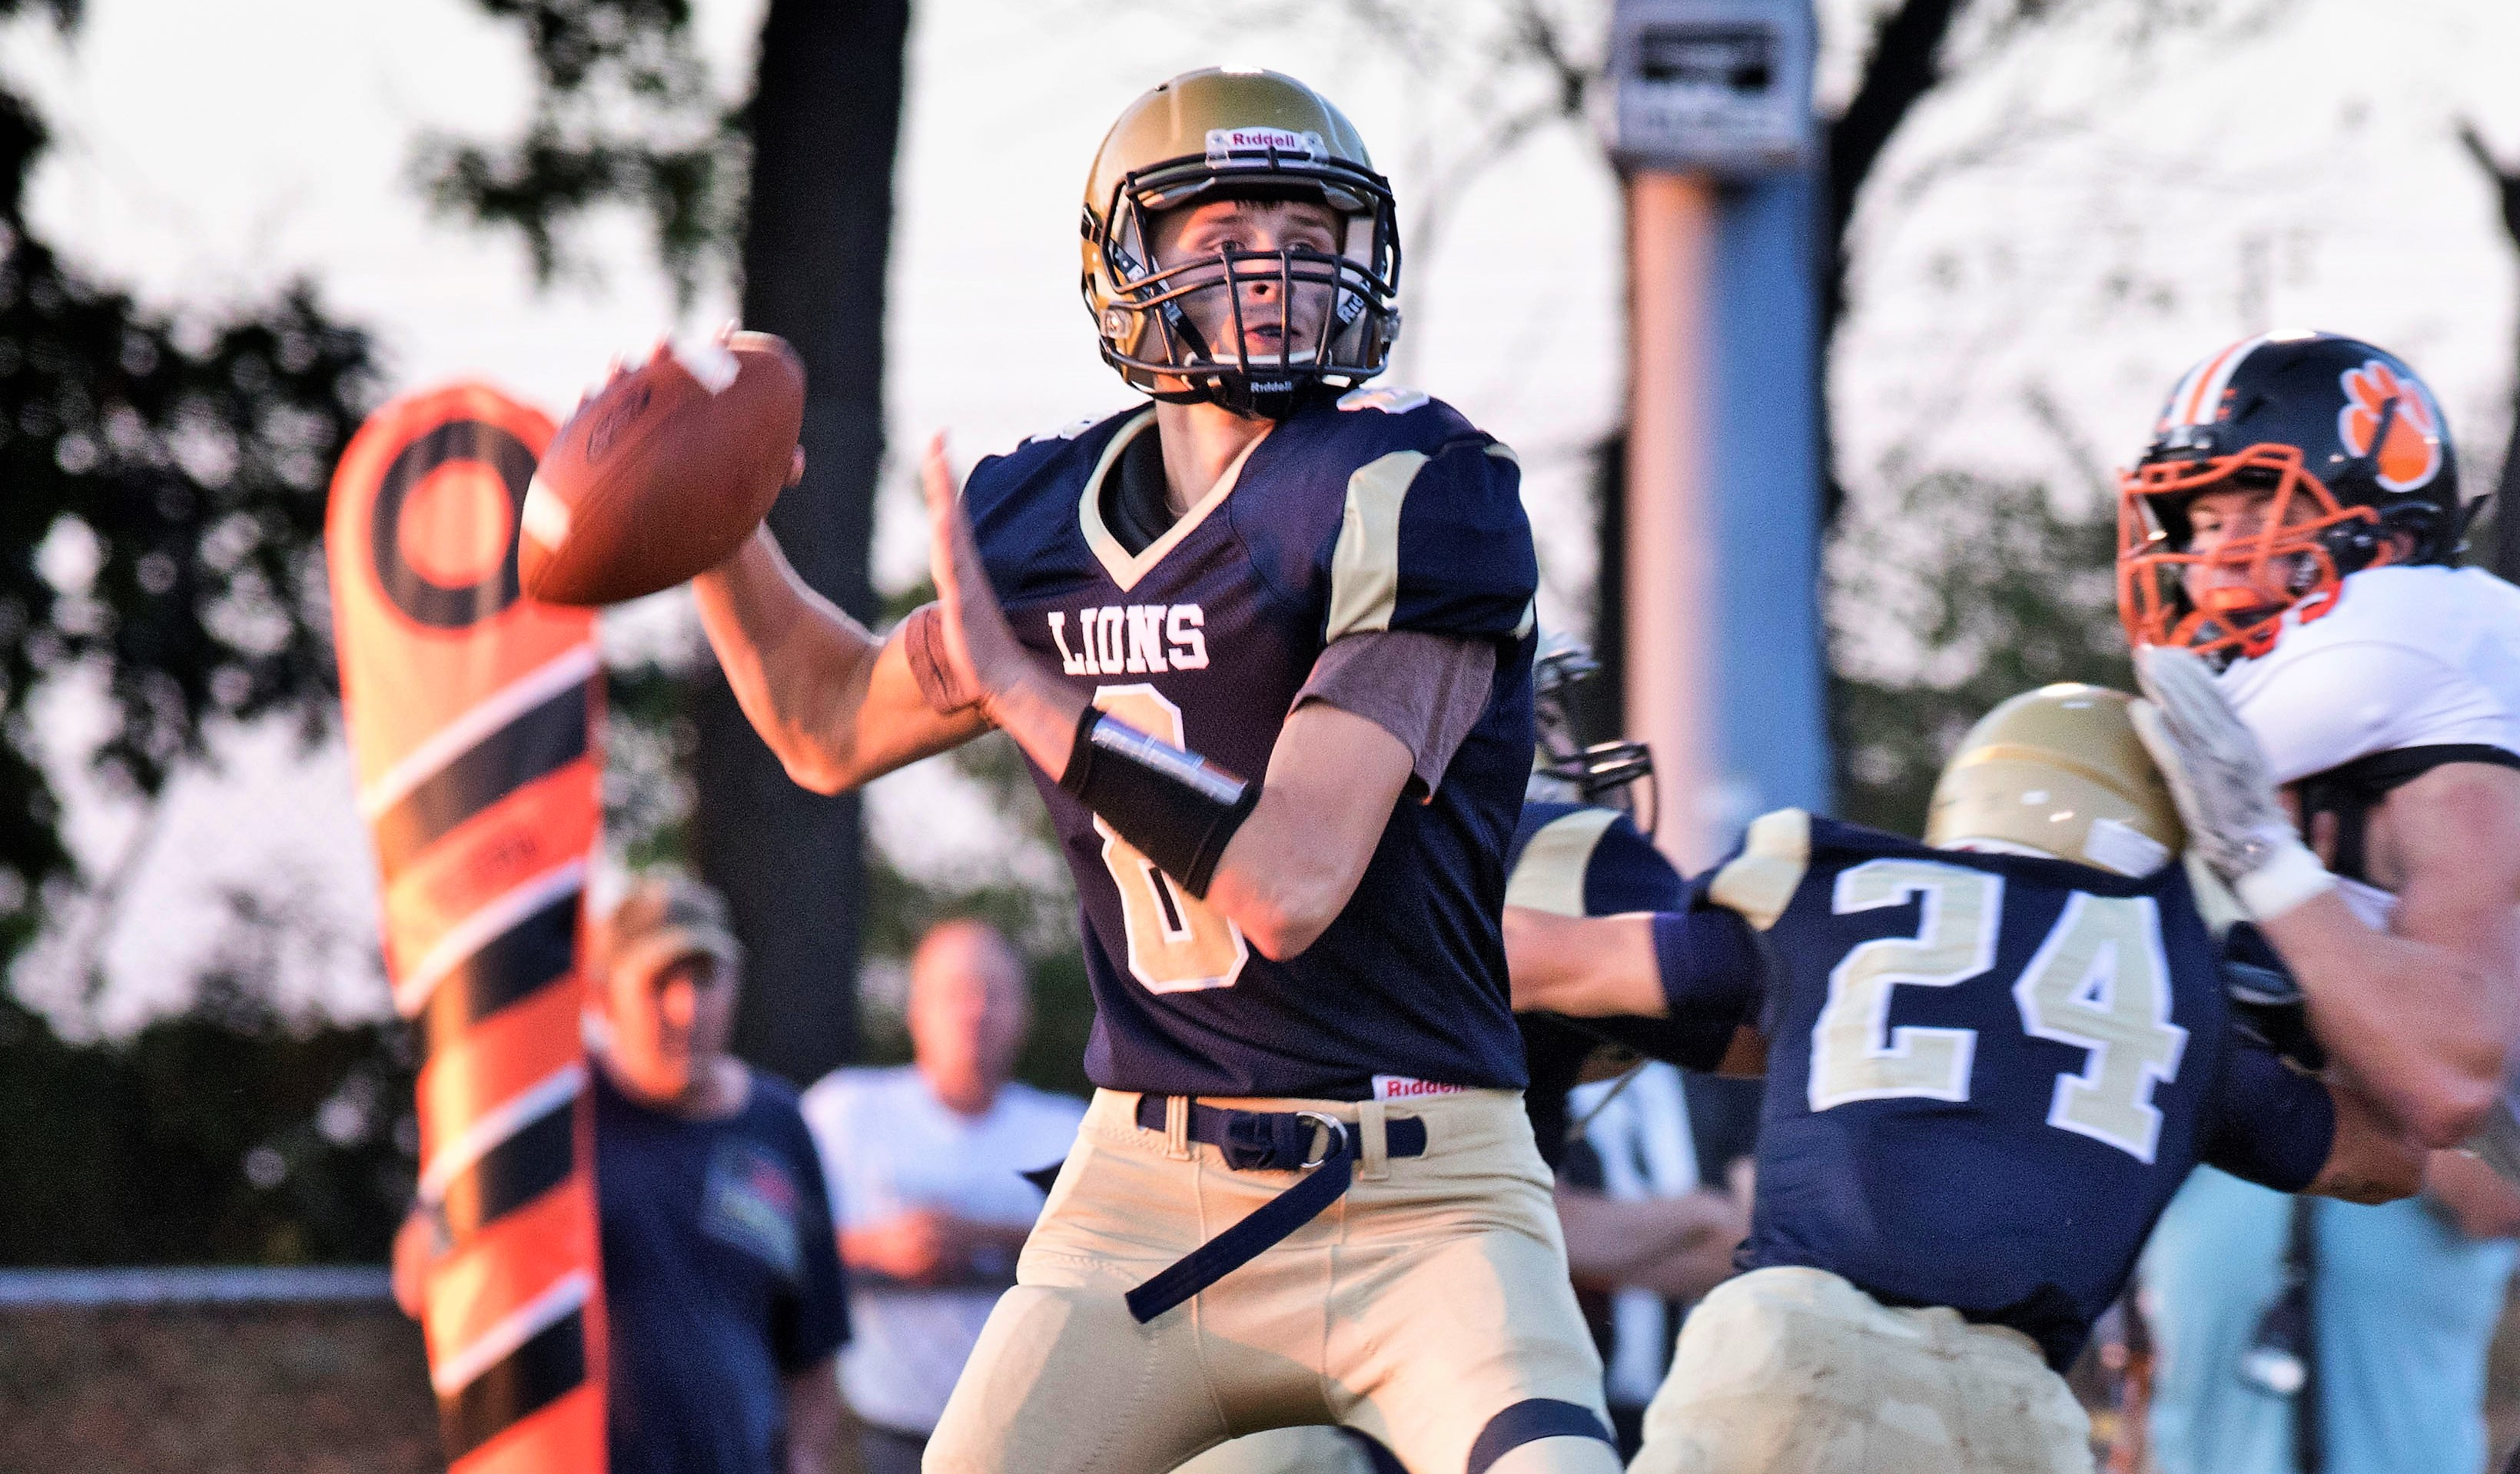 C-L quarterback Brenden Makray. Photo by Kyle Yates. Check out more of Yate's work at www.facebook.com/YatesPhoto